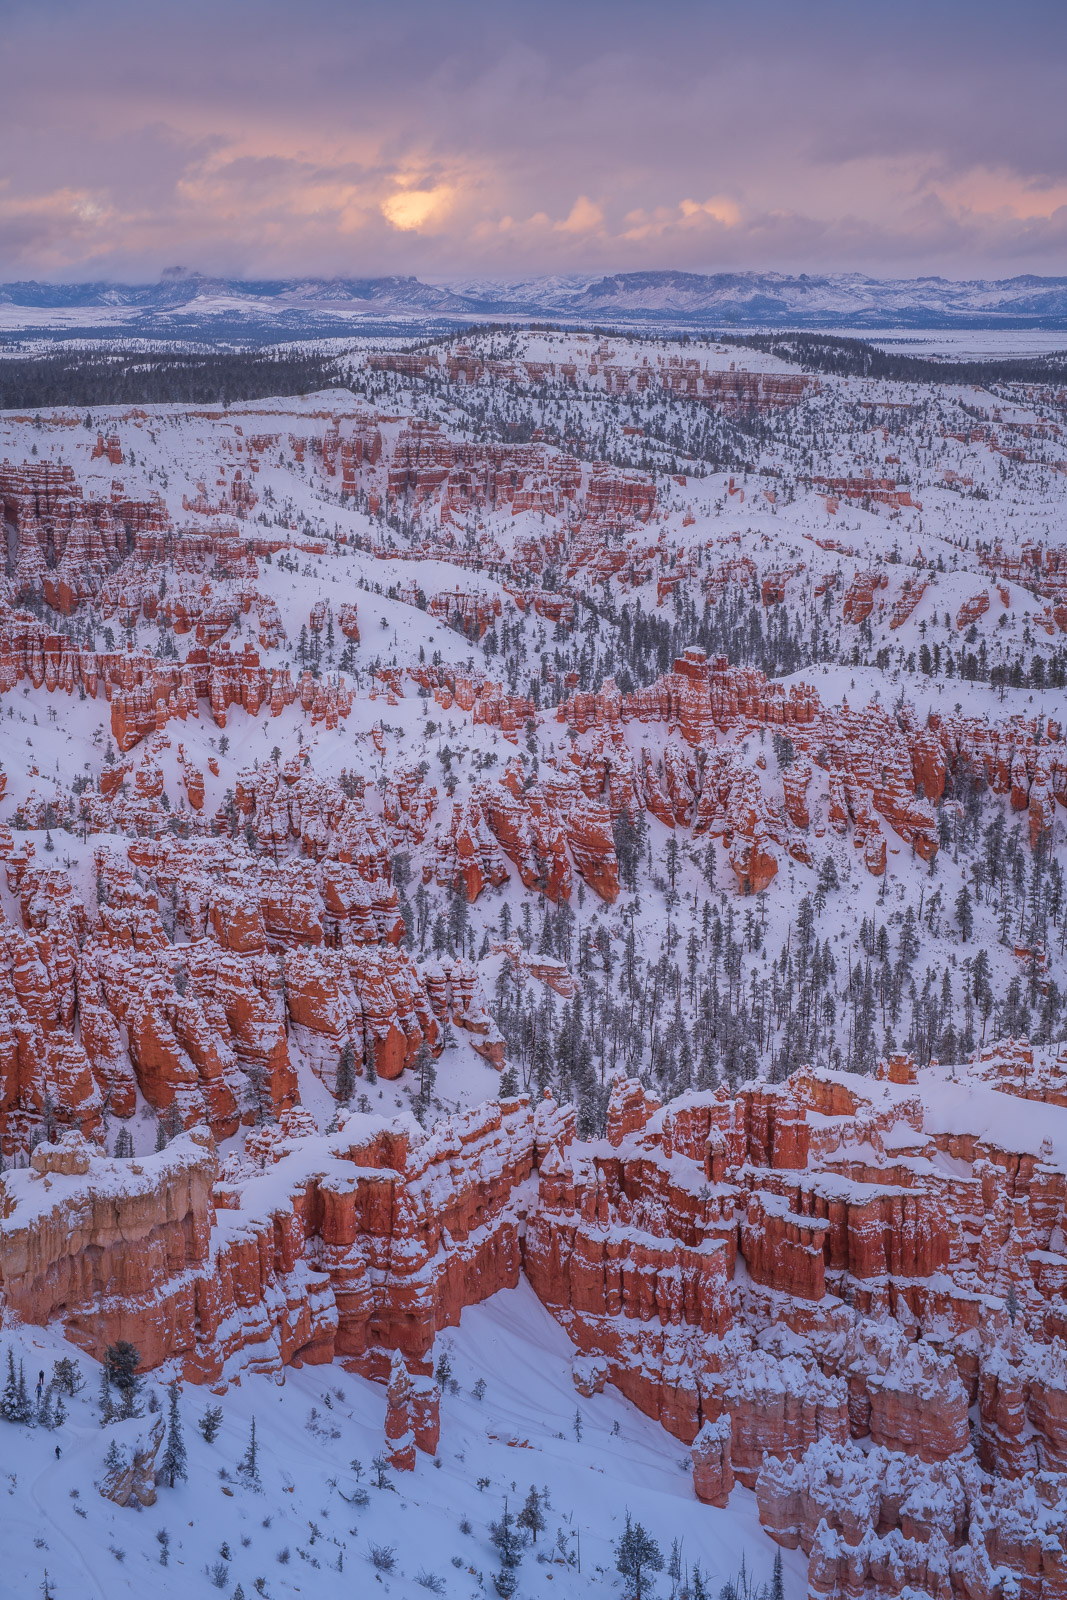 The storm that dumped a foot of snow on Bryce Canyon begins to break up at sunset.